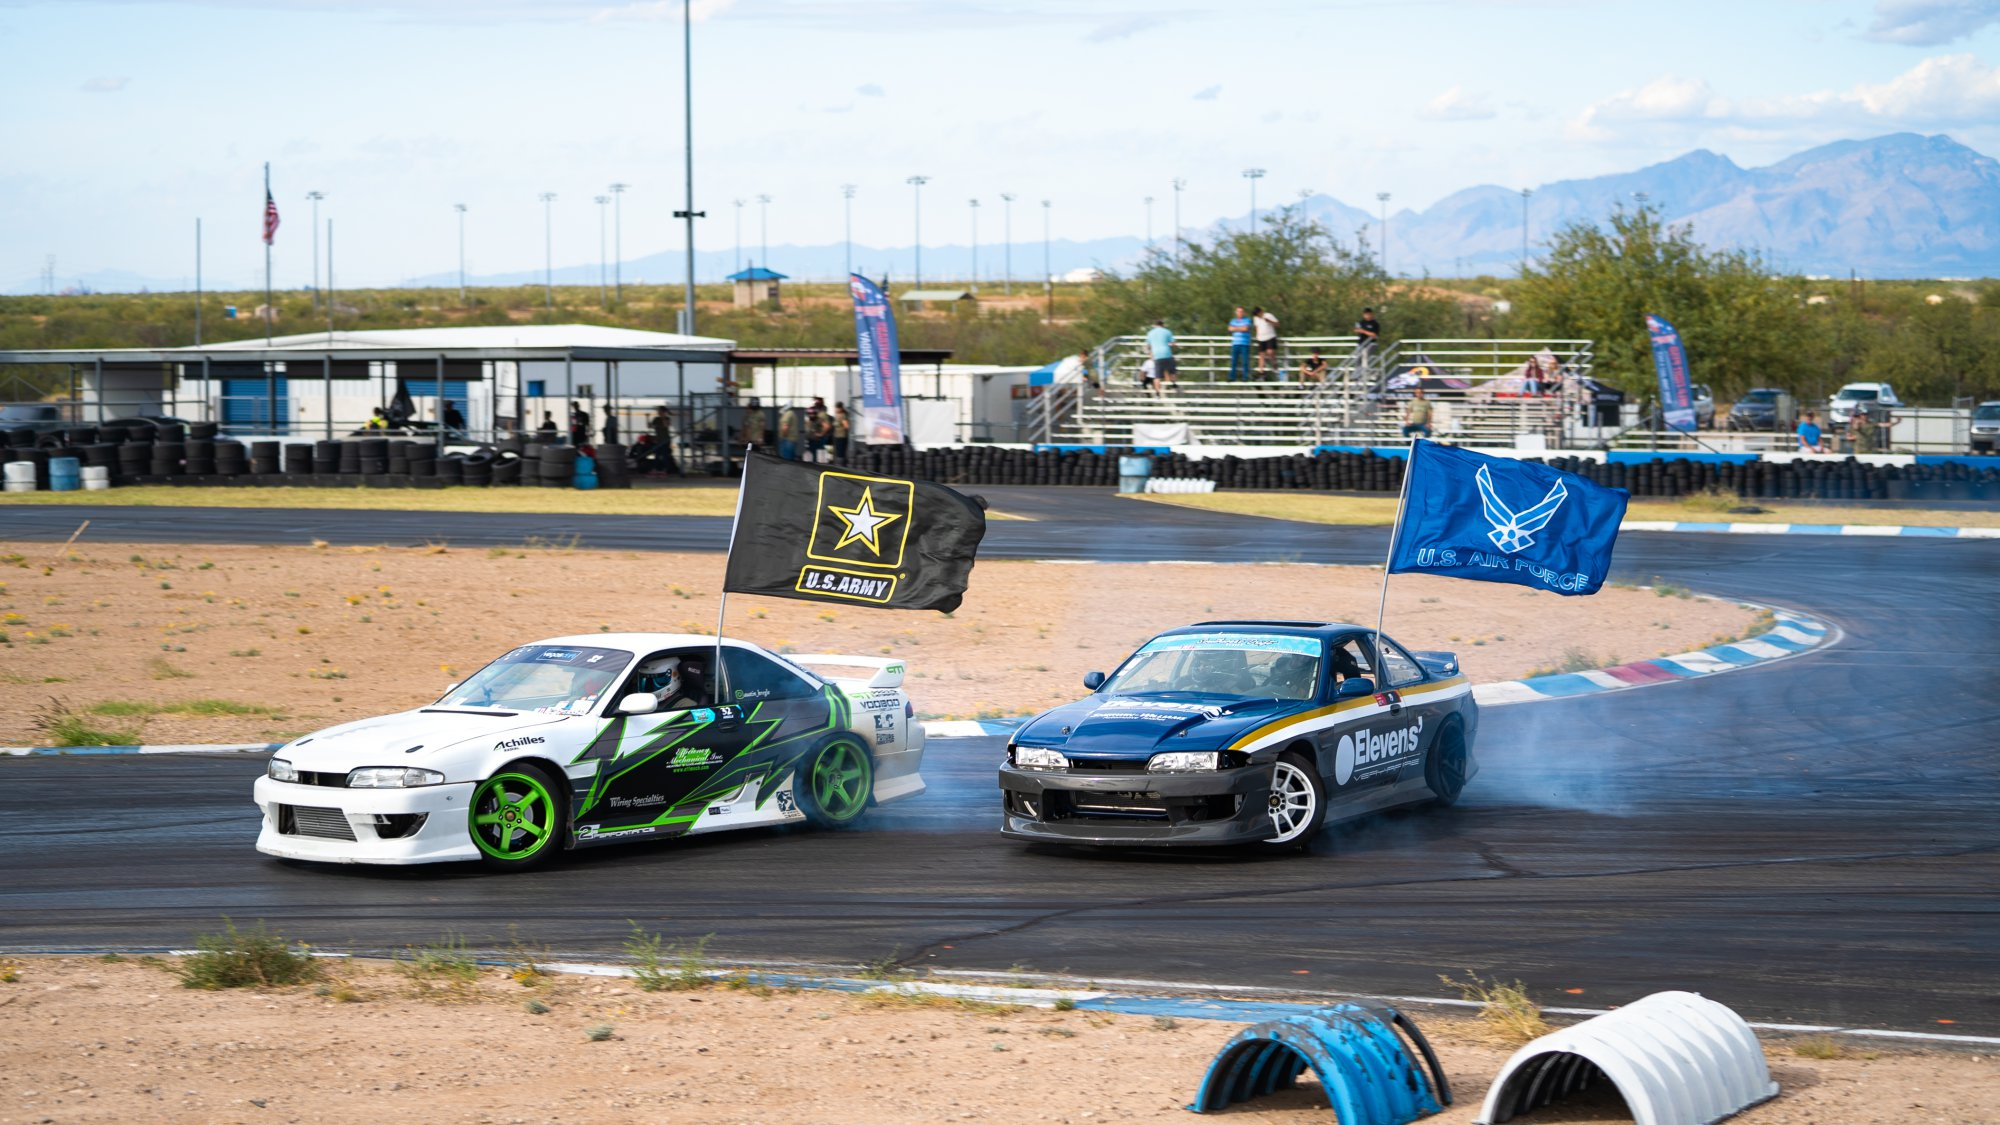 Drift drivers give veterans a healthy dose of adrenaline with ride alongs on track | Rebecca Nguyen photos